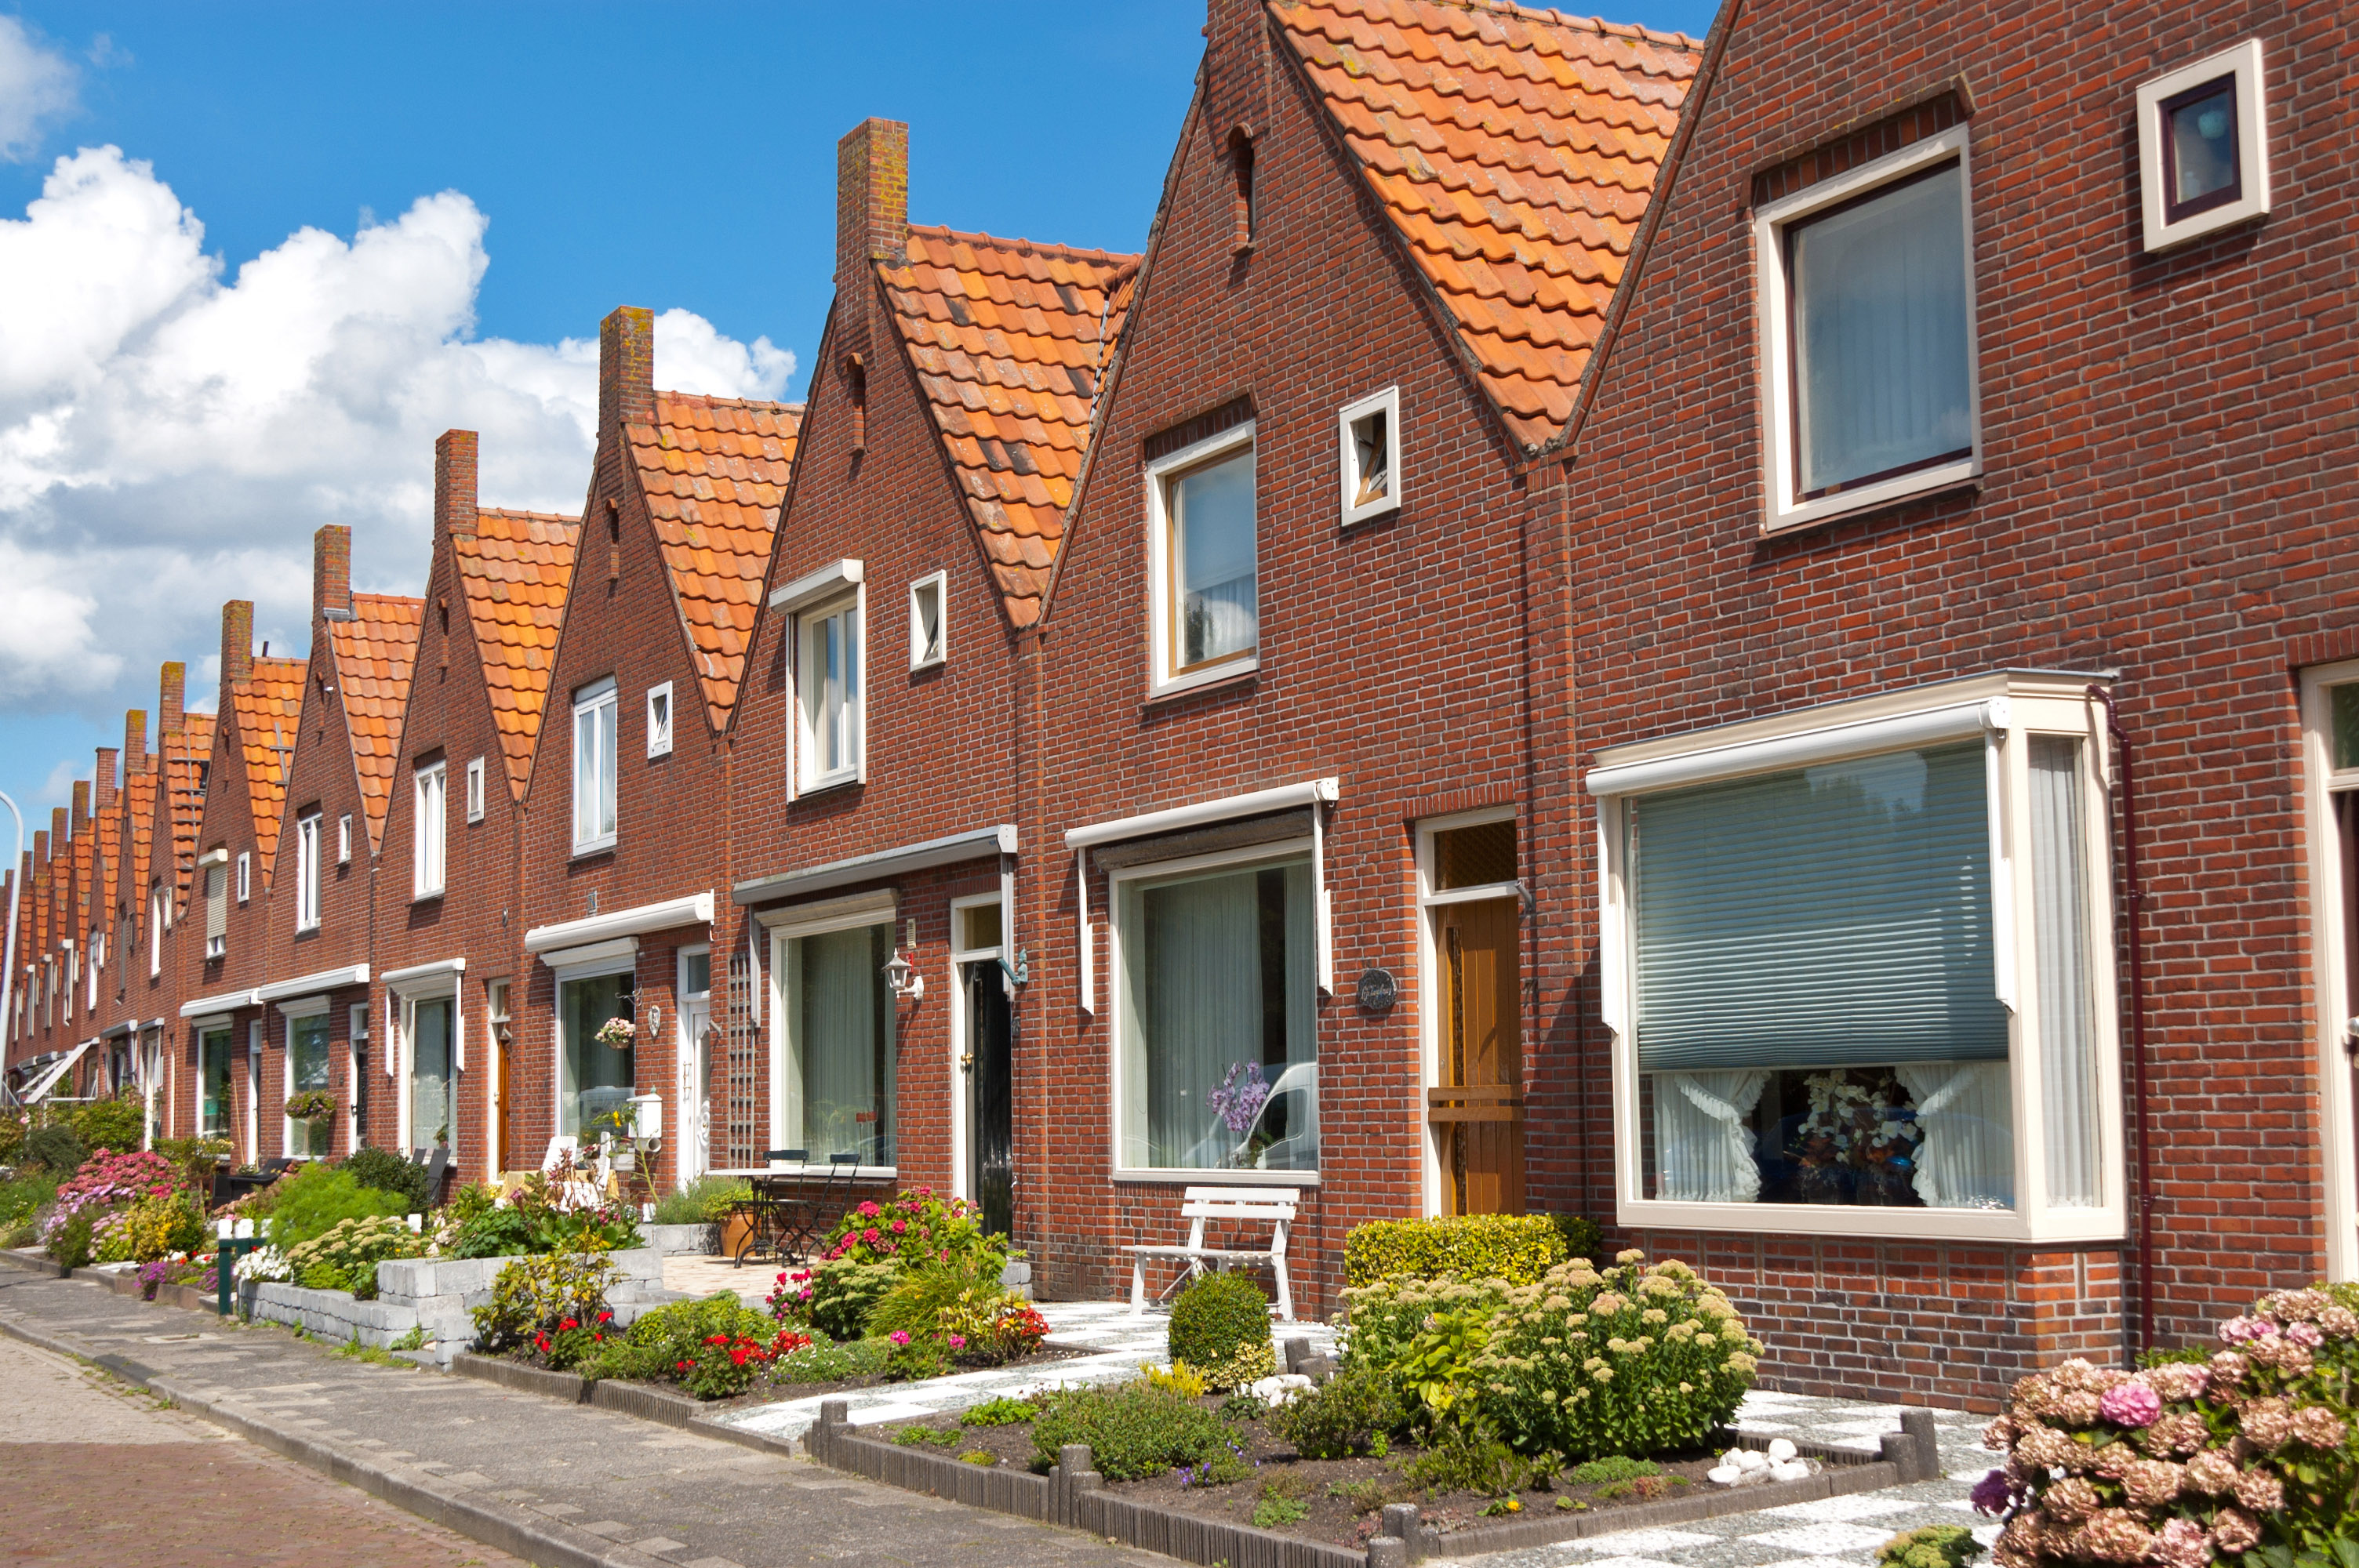 row_of_houses_photo_graphic